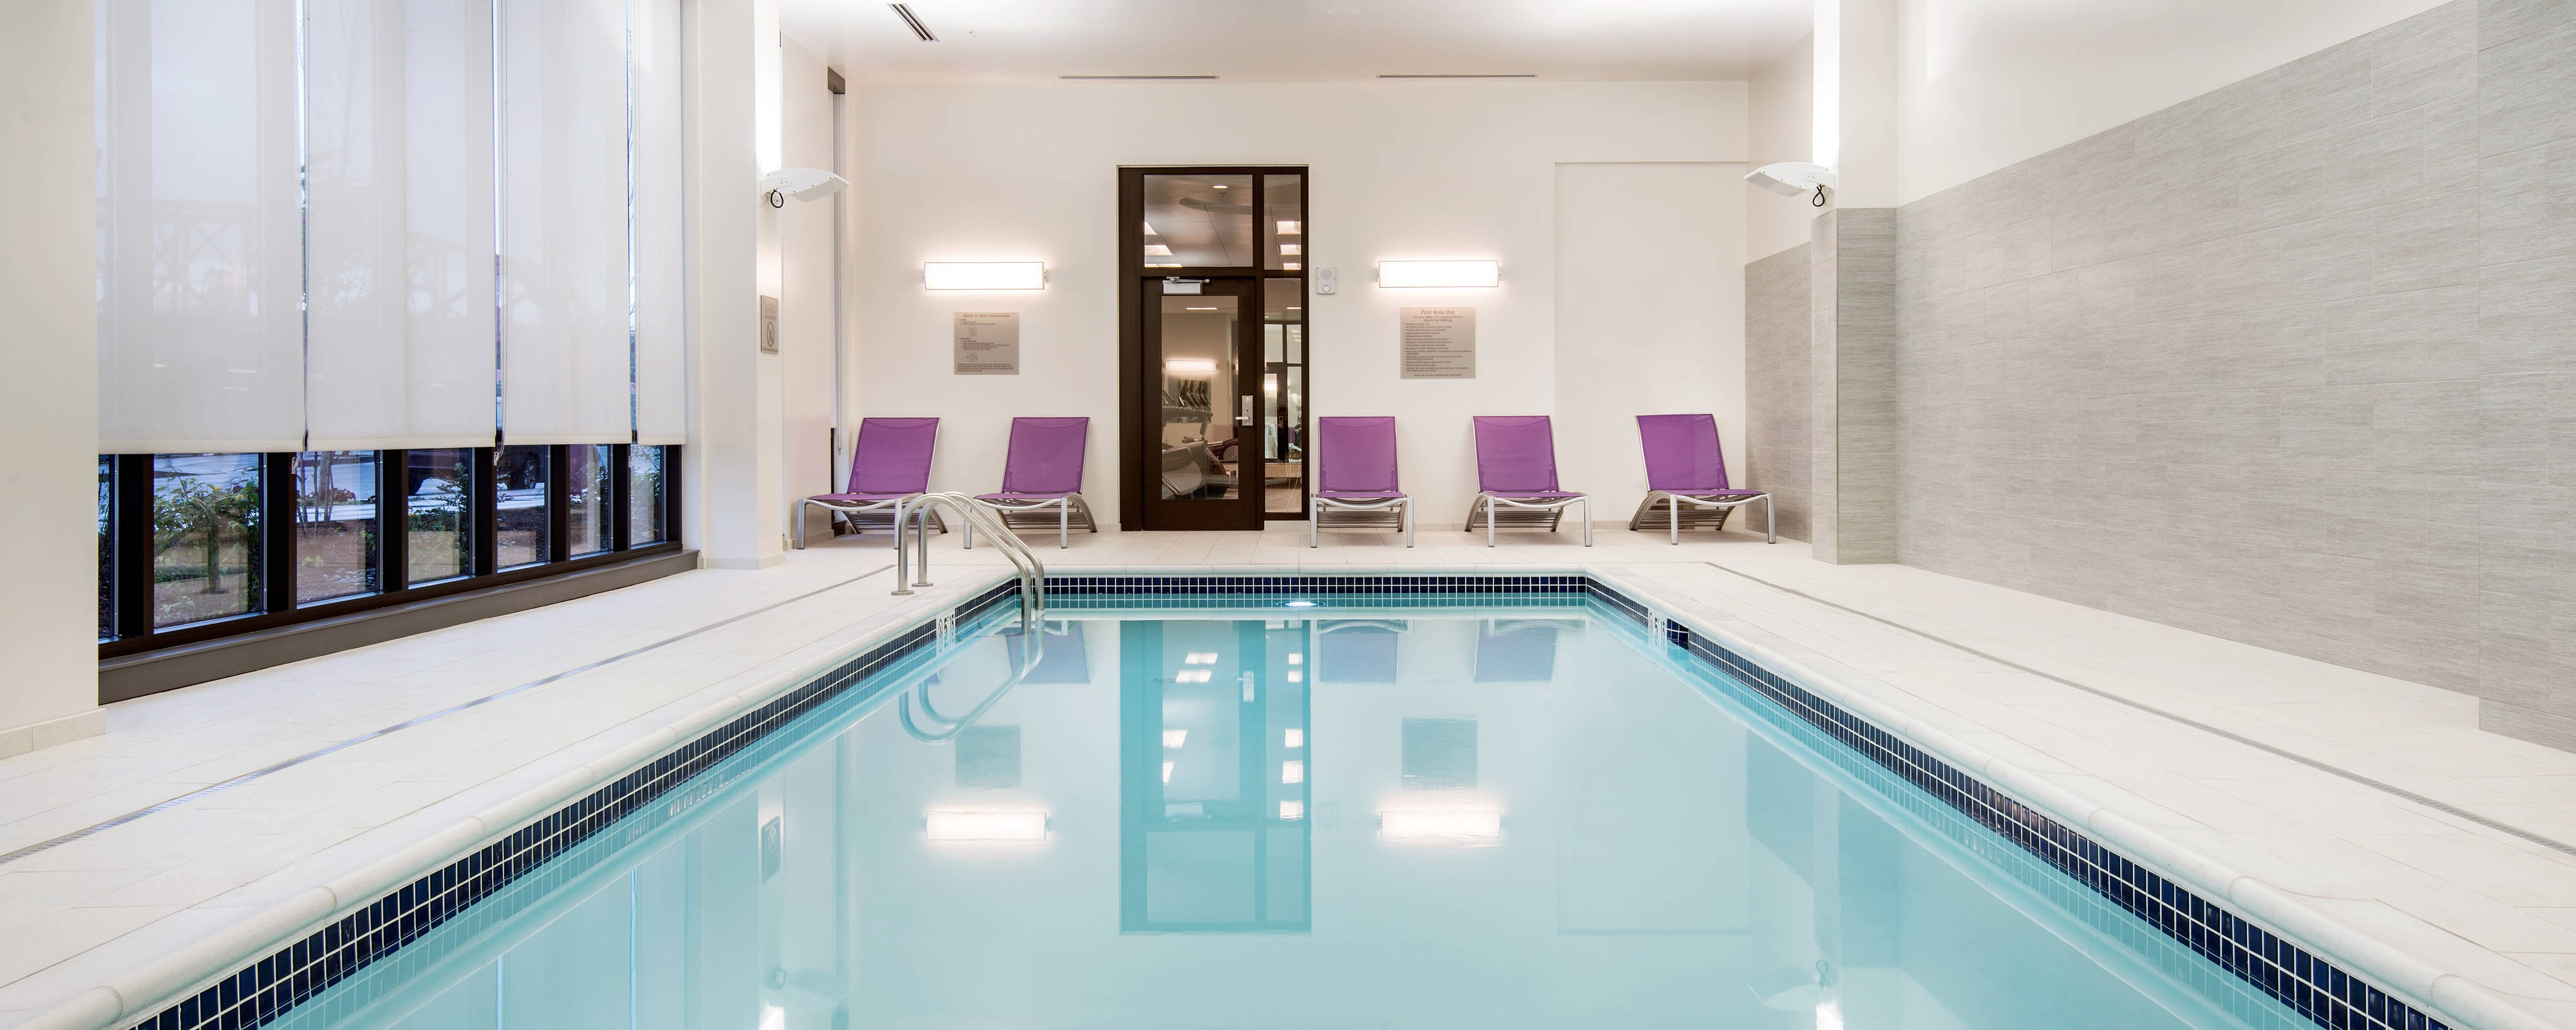 Pearl District Portland Hotel with Pool | Residence Inn Portland ...